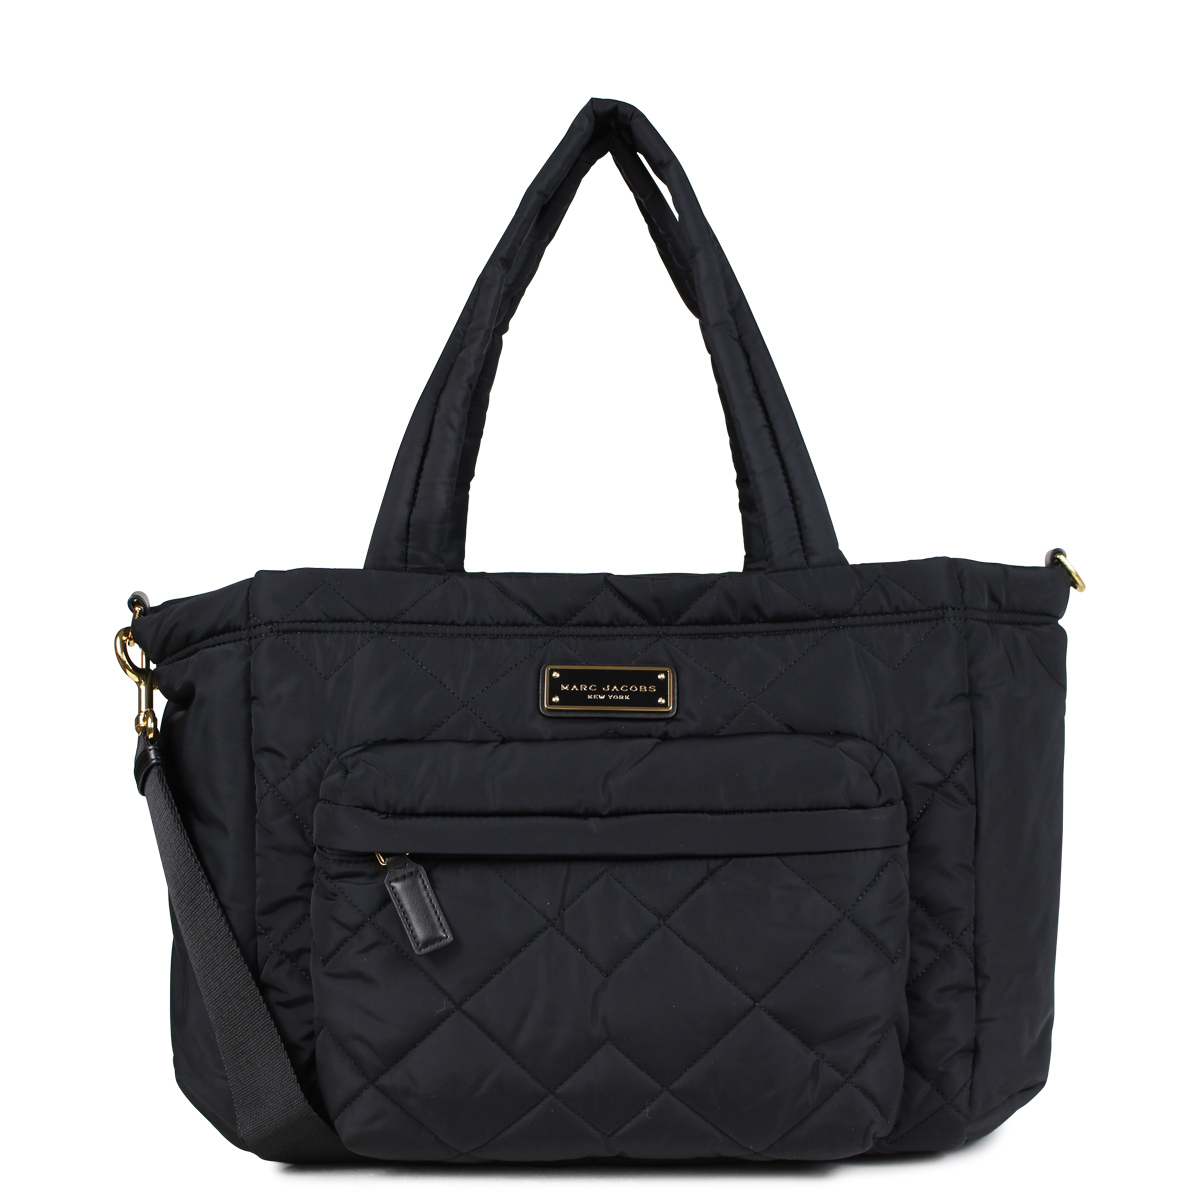 894e30912d08 ALLSPORTS  MARC JACOBS QUILTED NYLON TOTE mark Jacobs tote bag bag ...